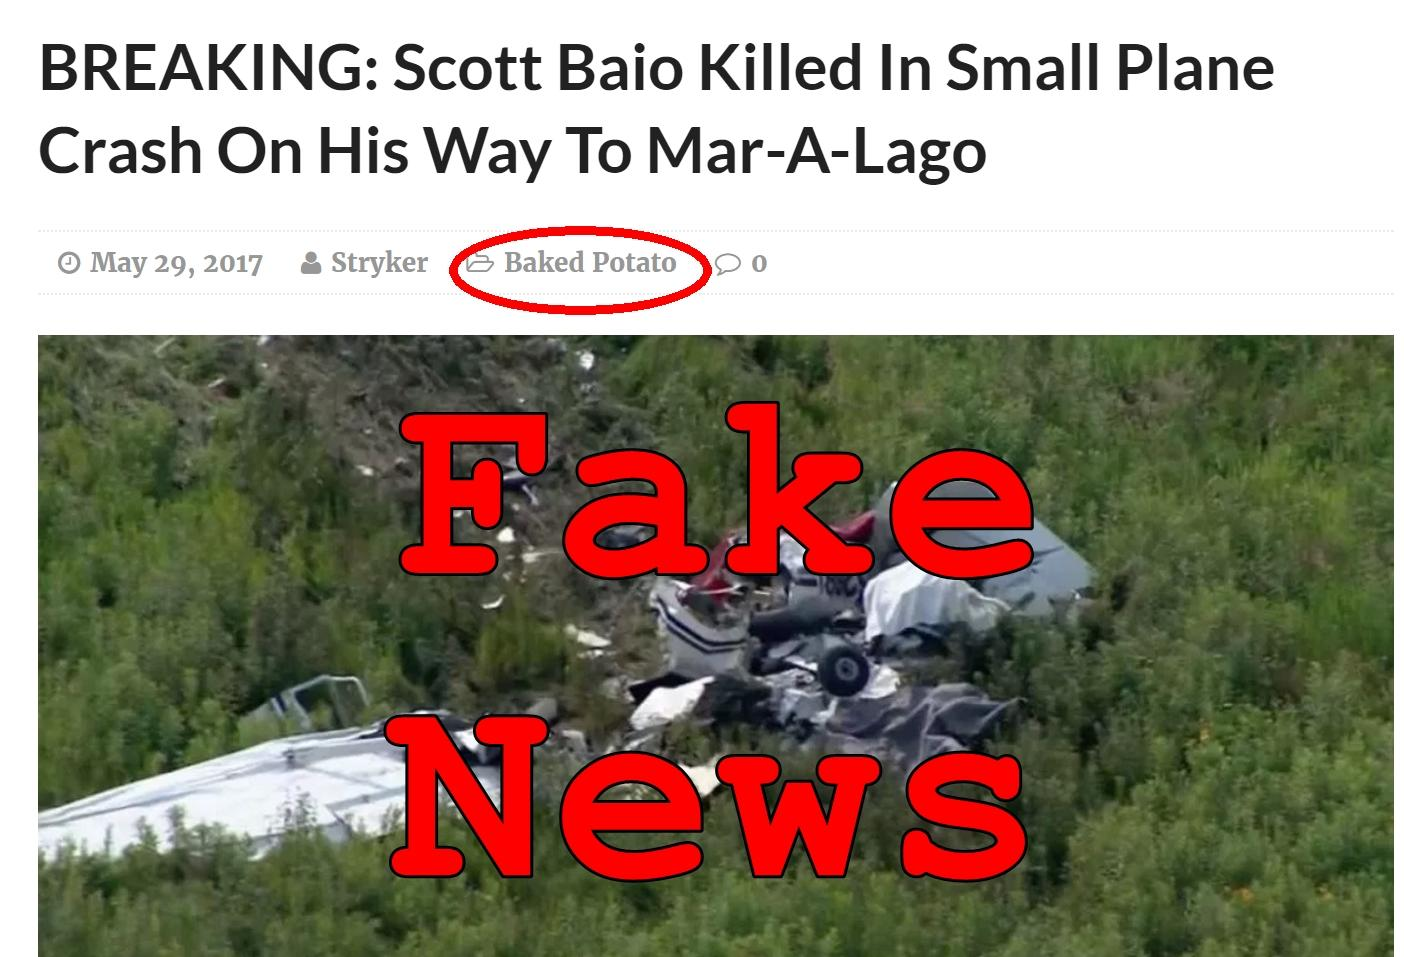 Fake News: Scott Baio NOT Killed In Small Plane Crash On His Way To Mar-A-Lago